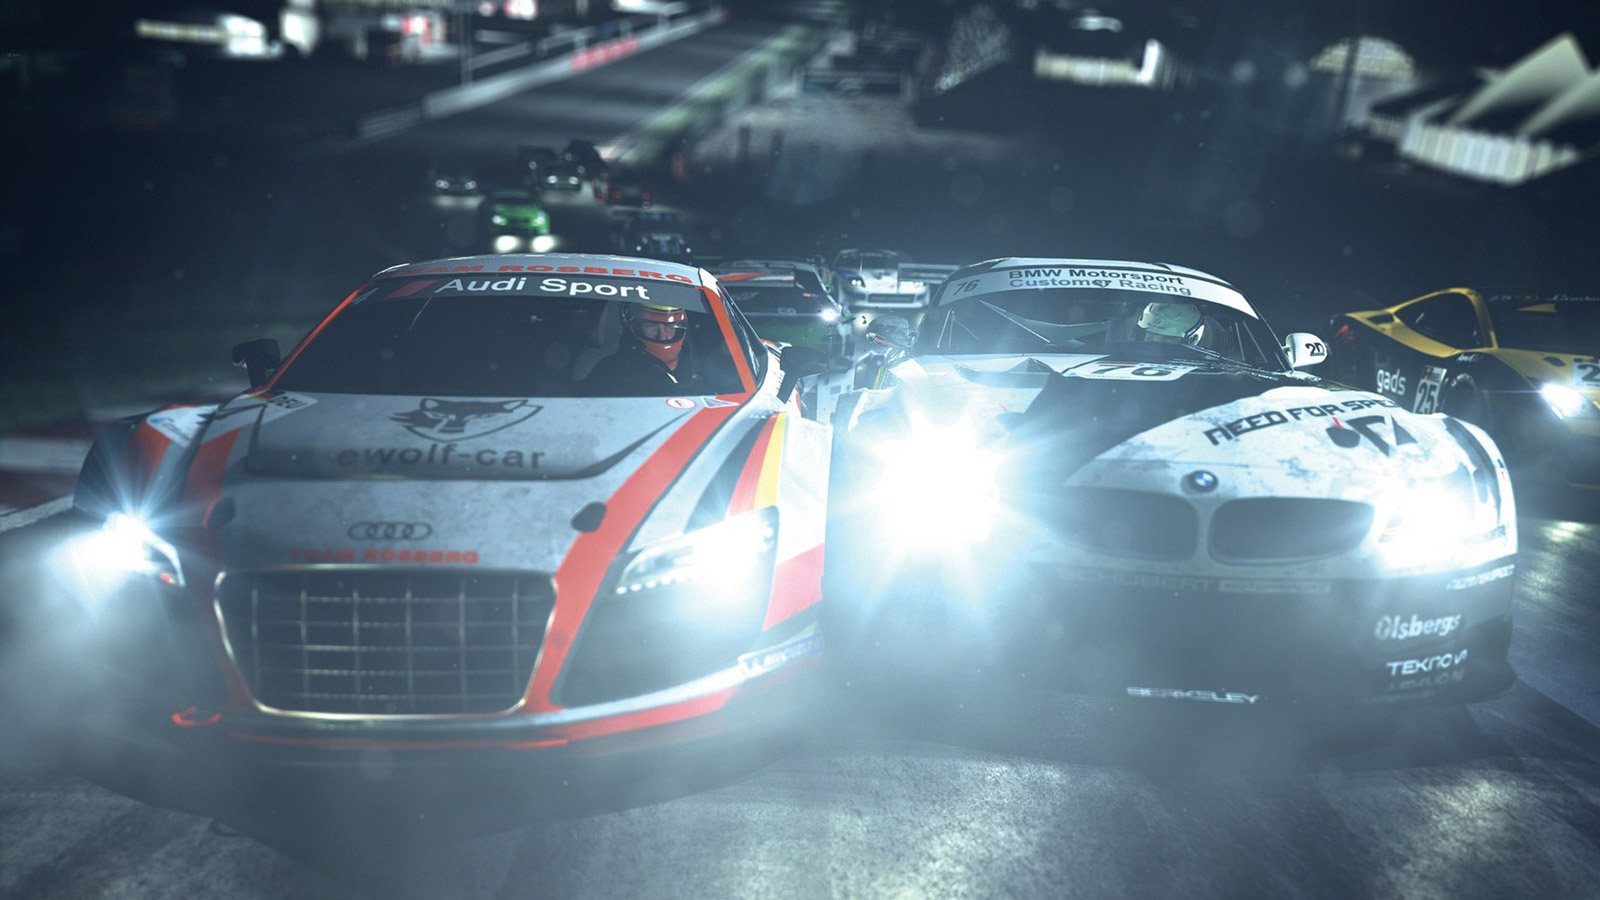 Need for Speed: Shift 2 Unleashed Wallpaper in 1600x900